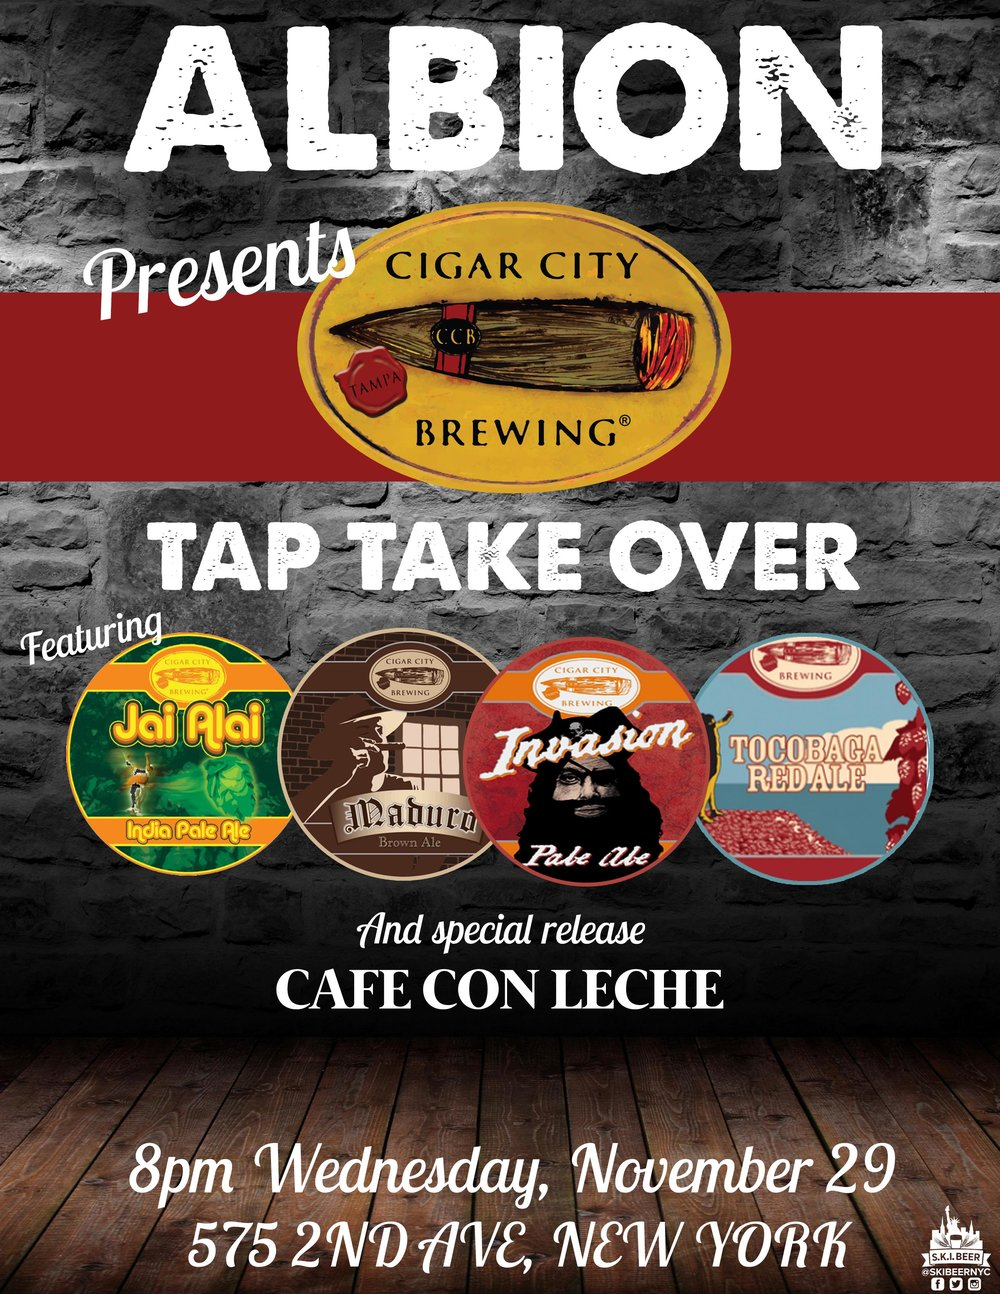 ALBION_CIGAR CITY TAP TAKE OVER.jpg